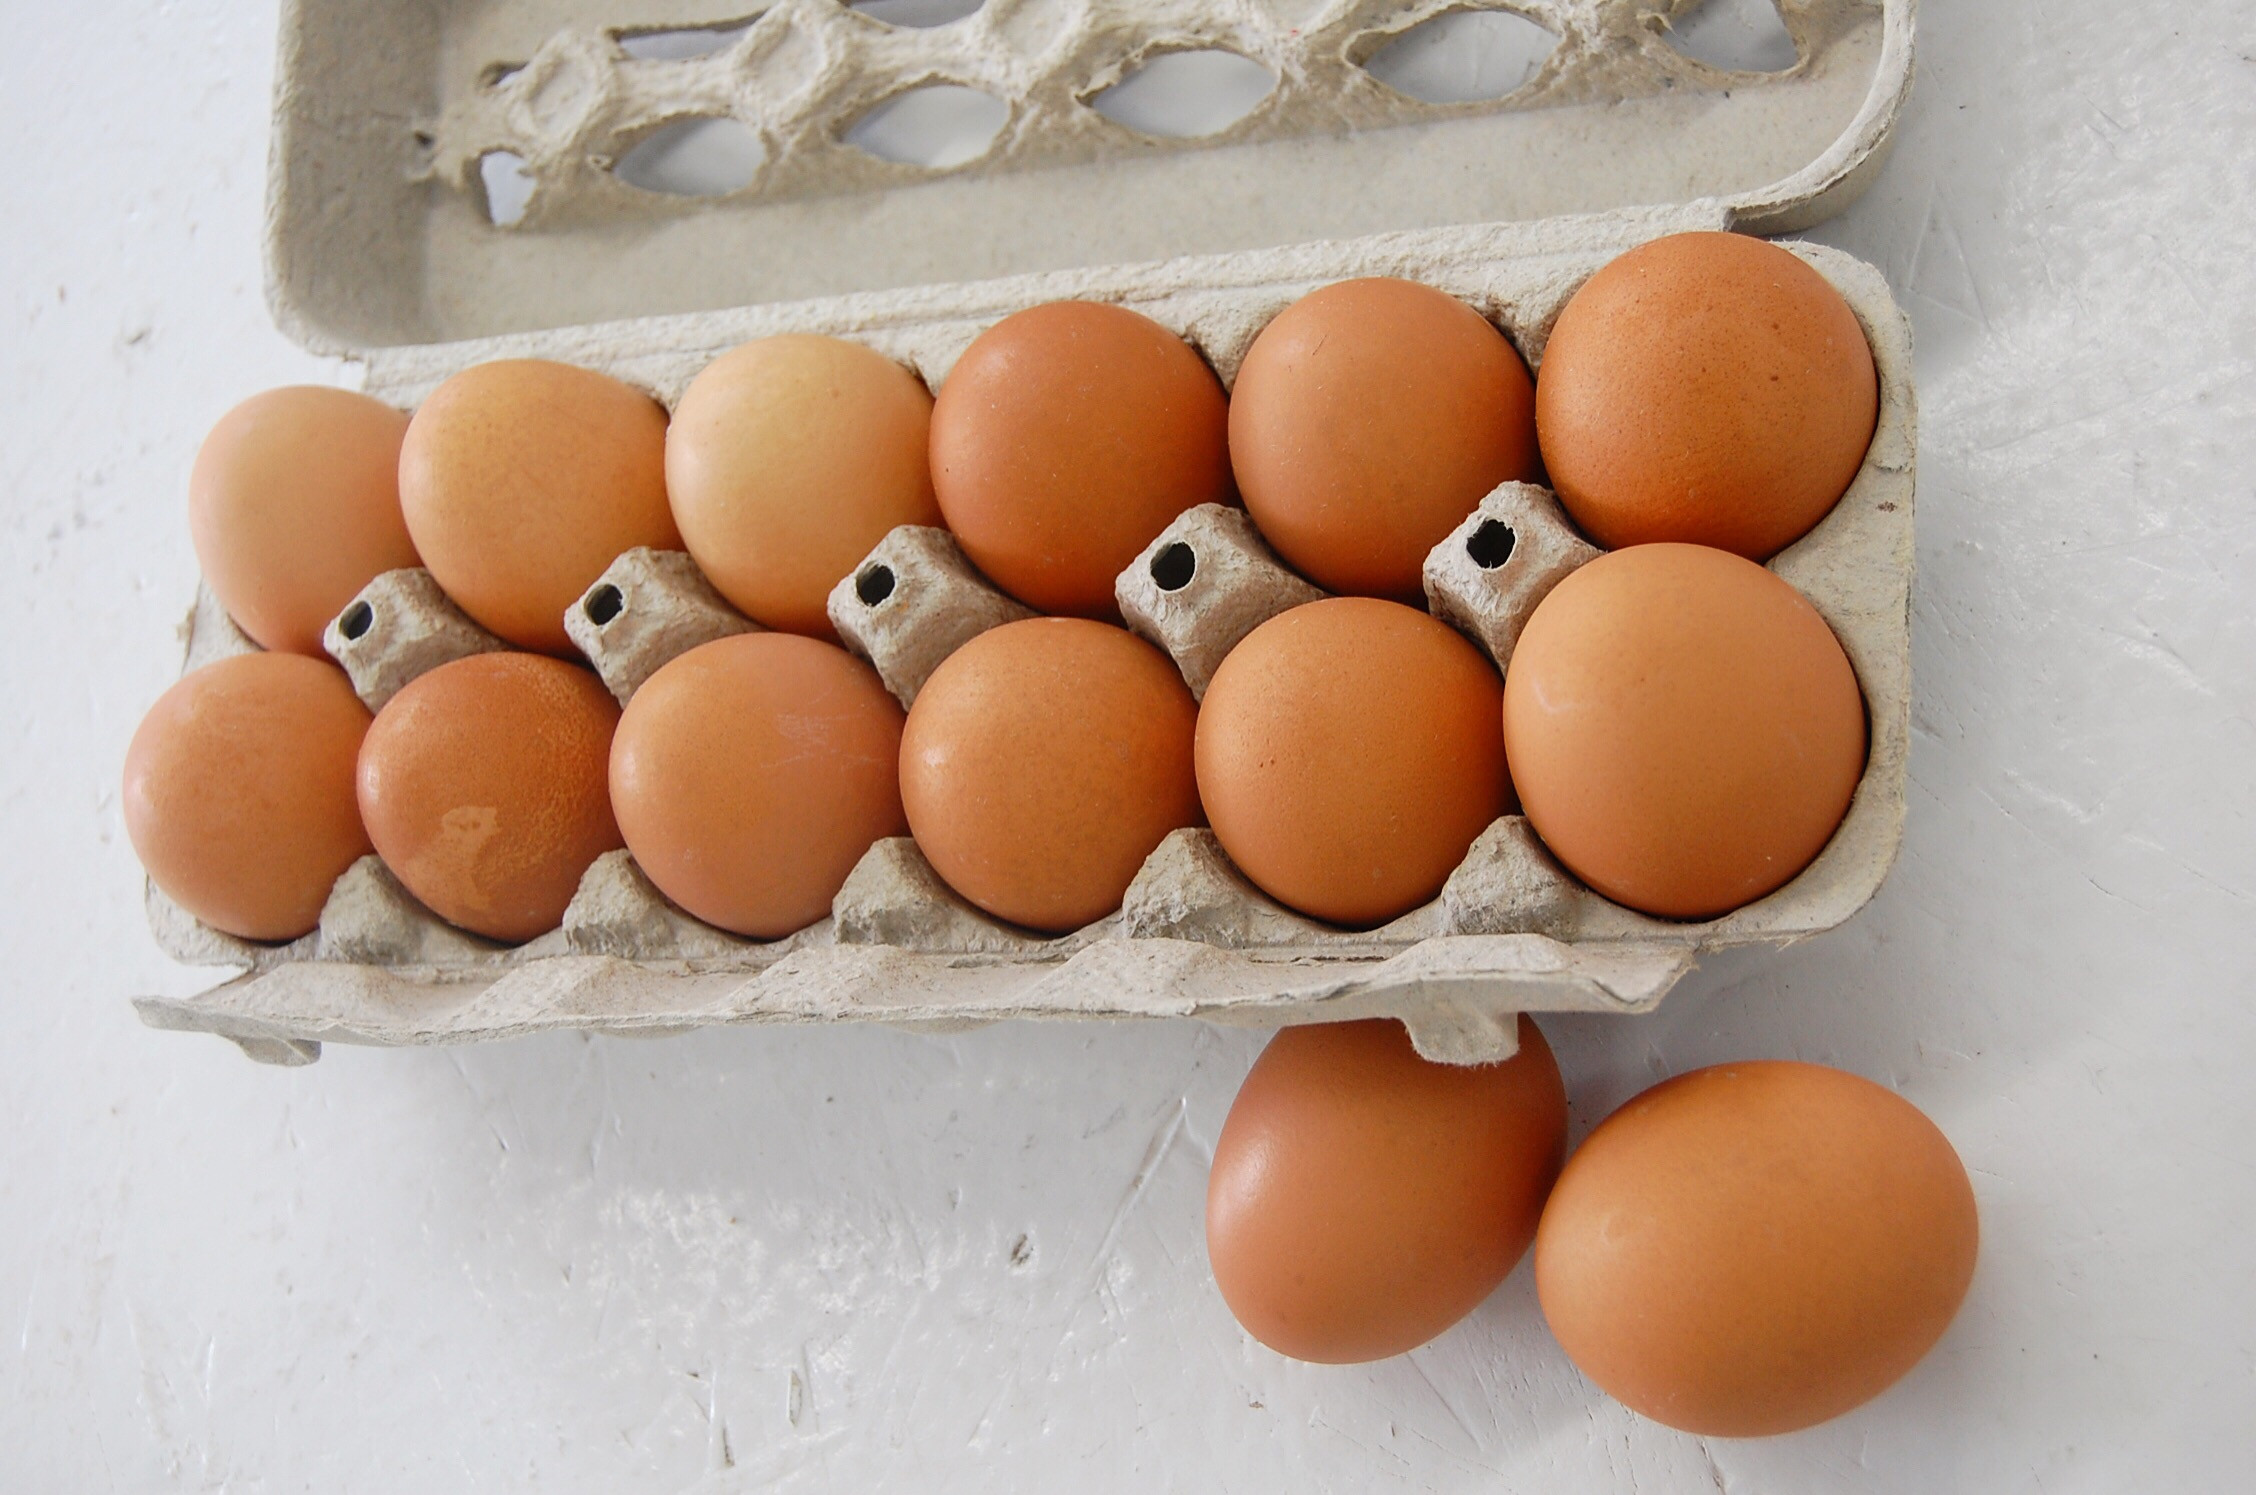 Mobile Pastured Eggs